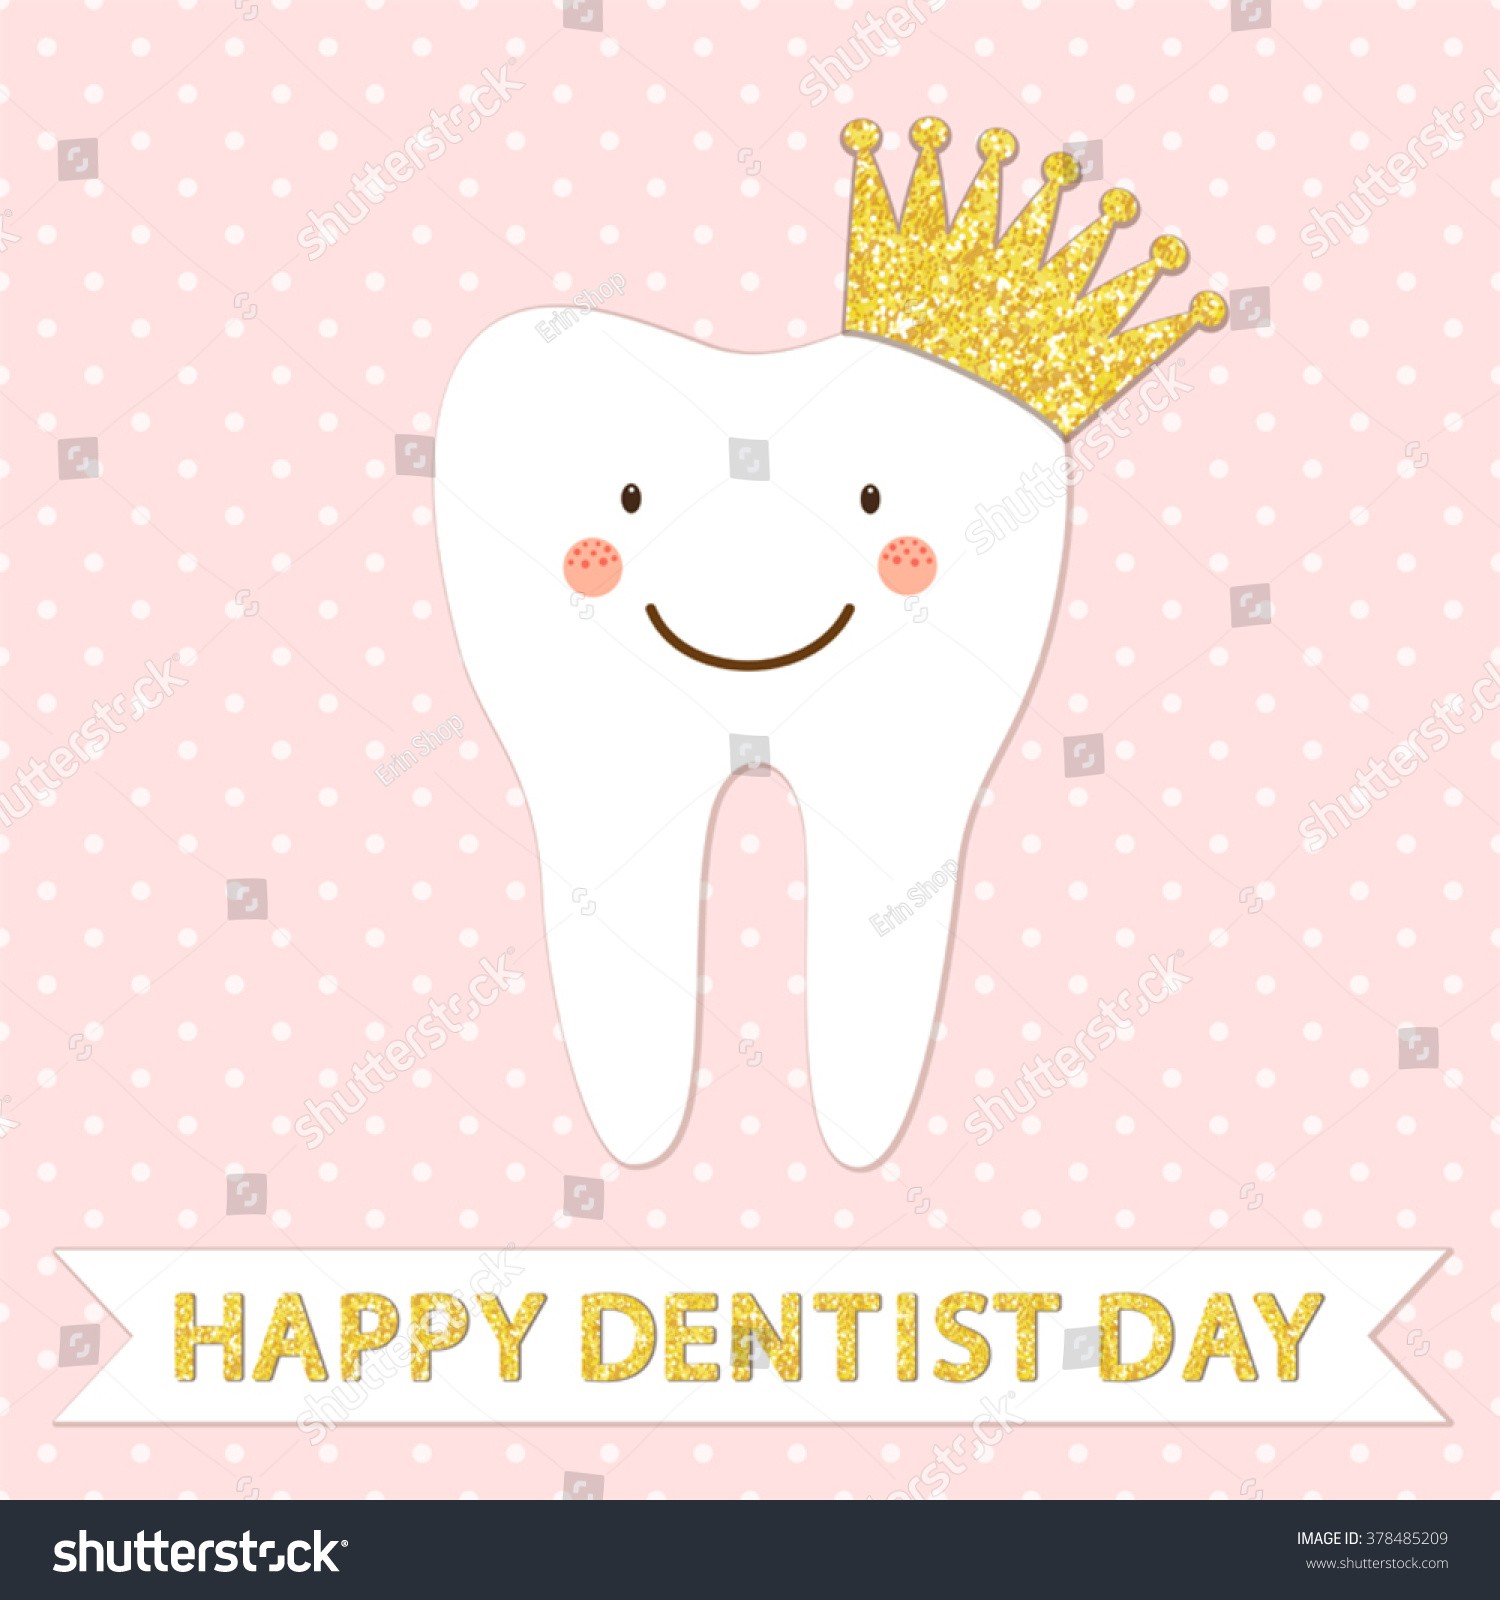 Royalty free cute greeting card happy dentist day as 378485209 cute greeting card happy dentist day as funny smiling cartoon character of tooth with golden glitter m4hsunfo